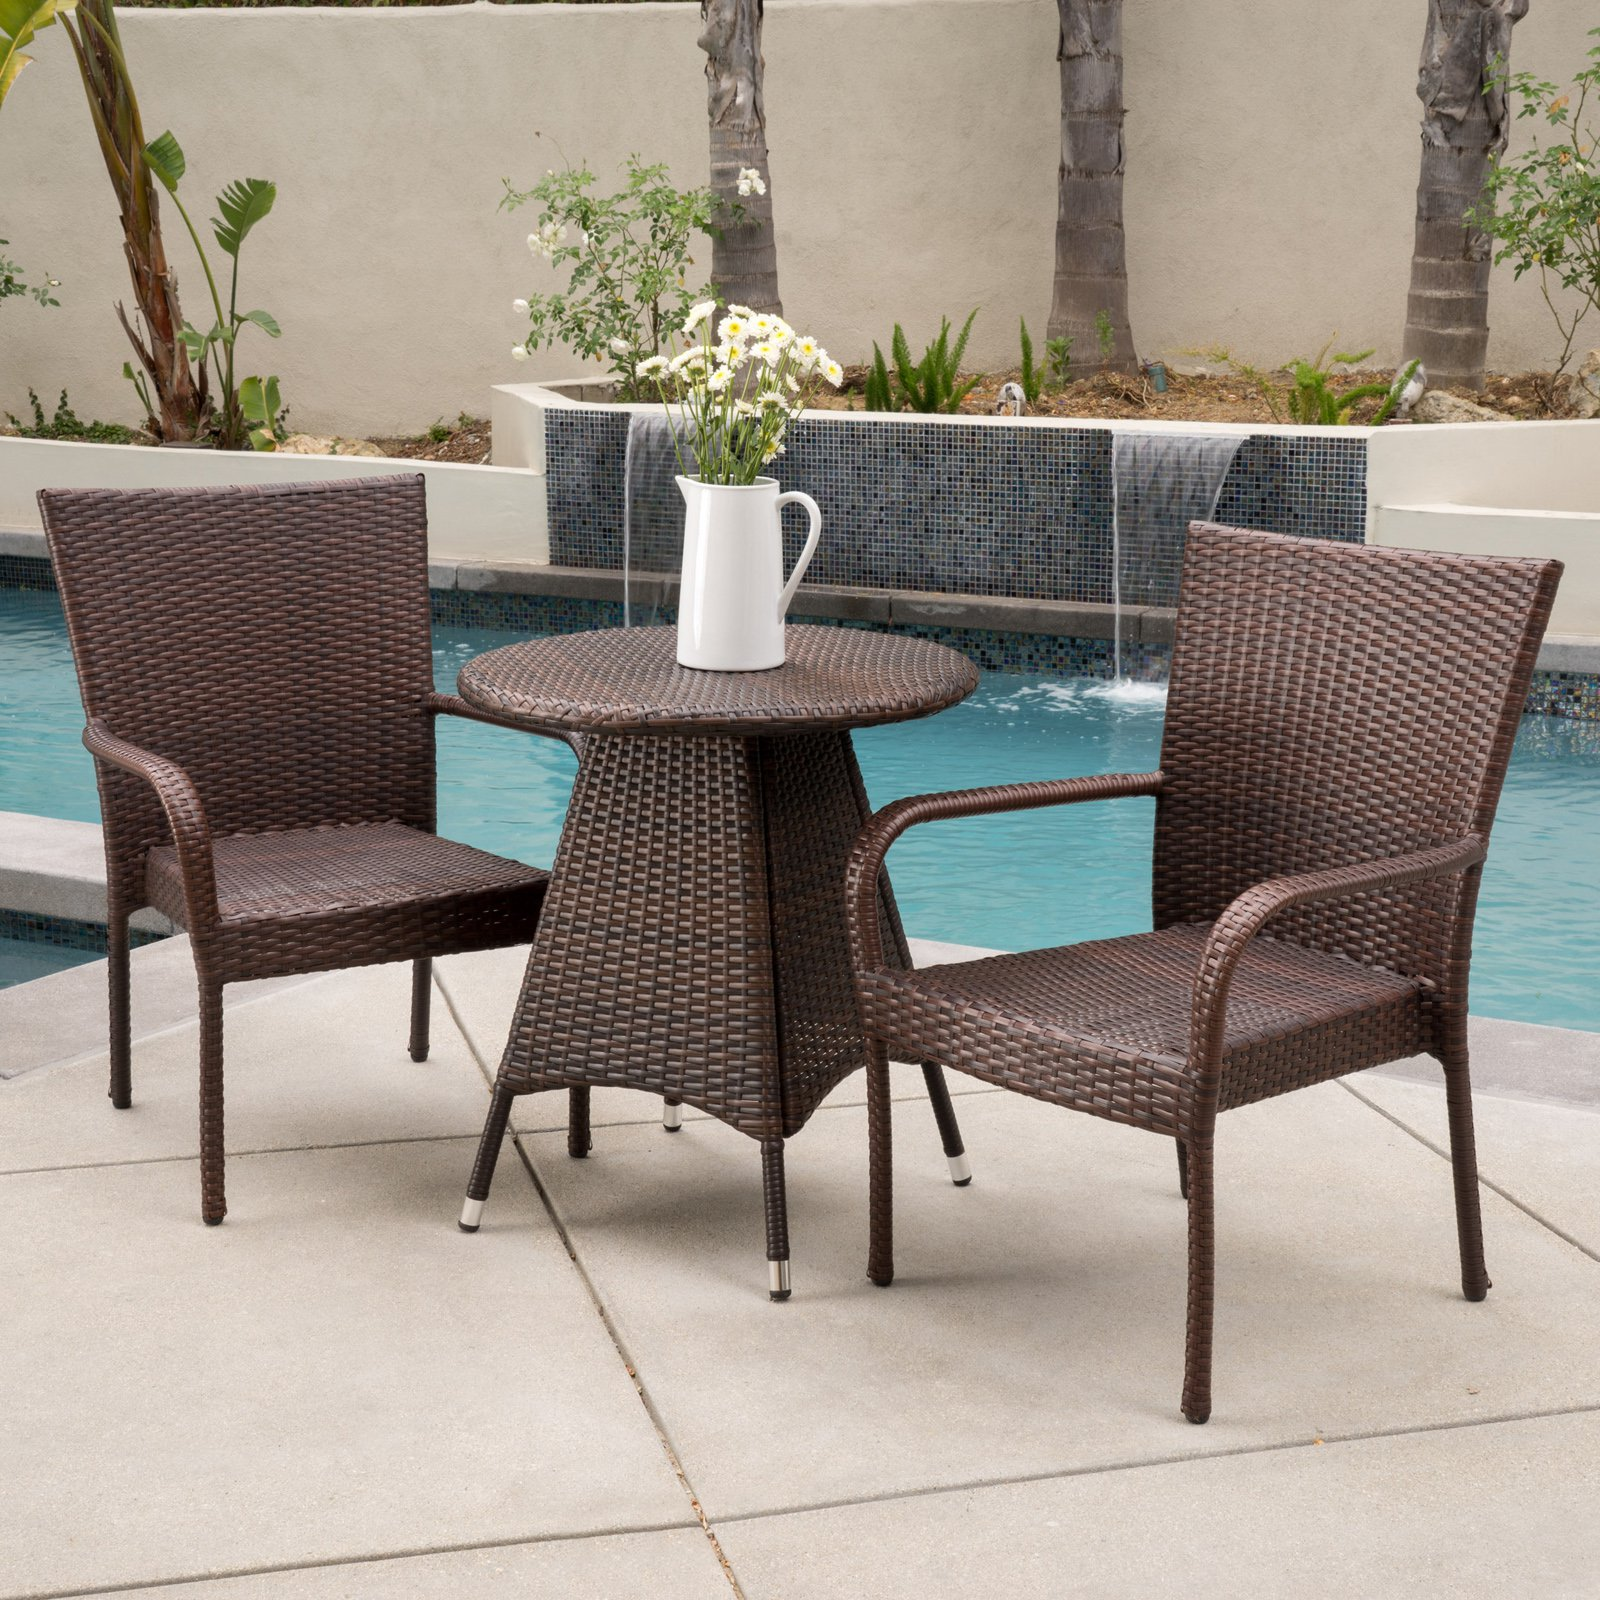 Robert Wicker 3 Piece Round Bistro Set